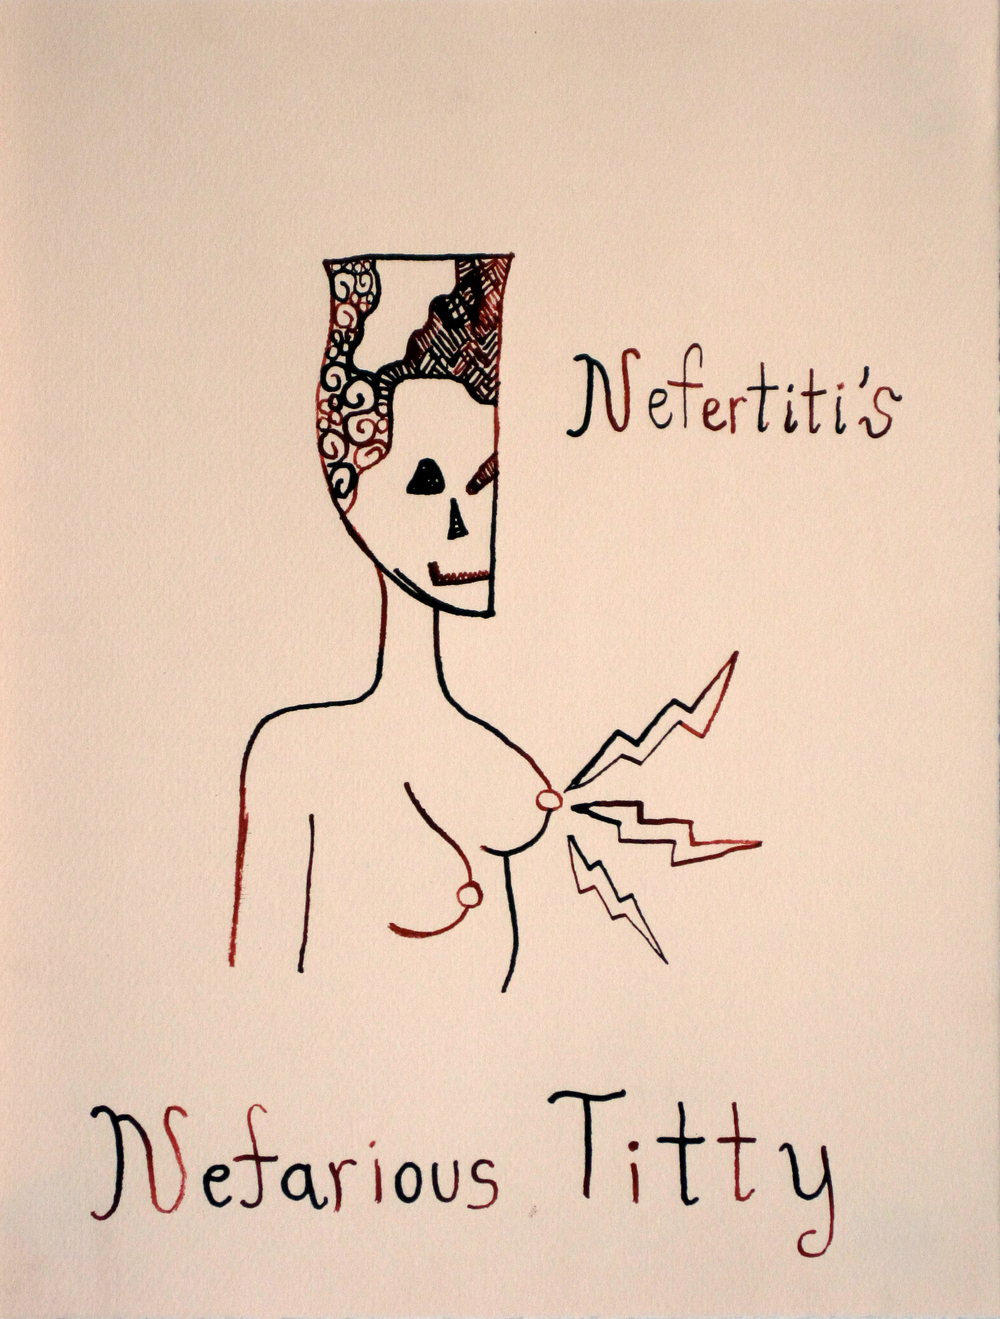 Nefertiti's Nefarious Titty